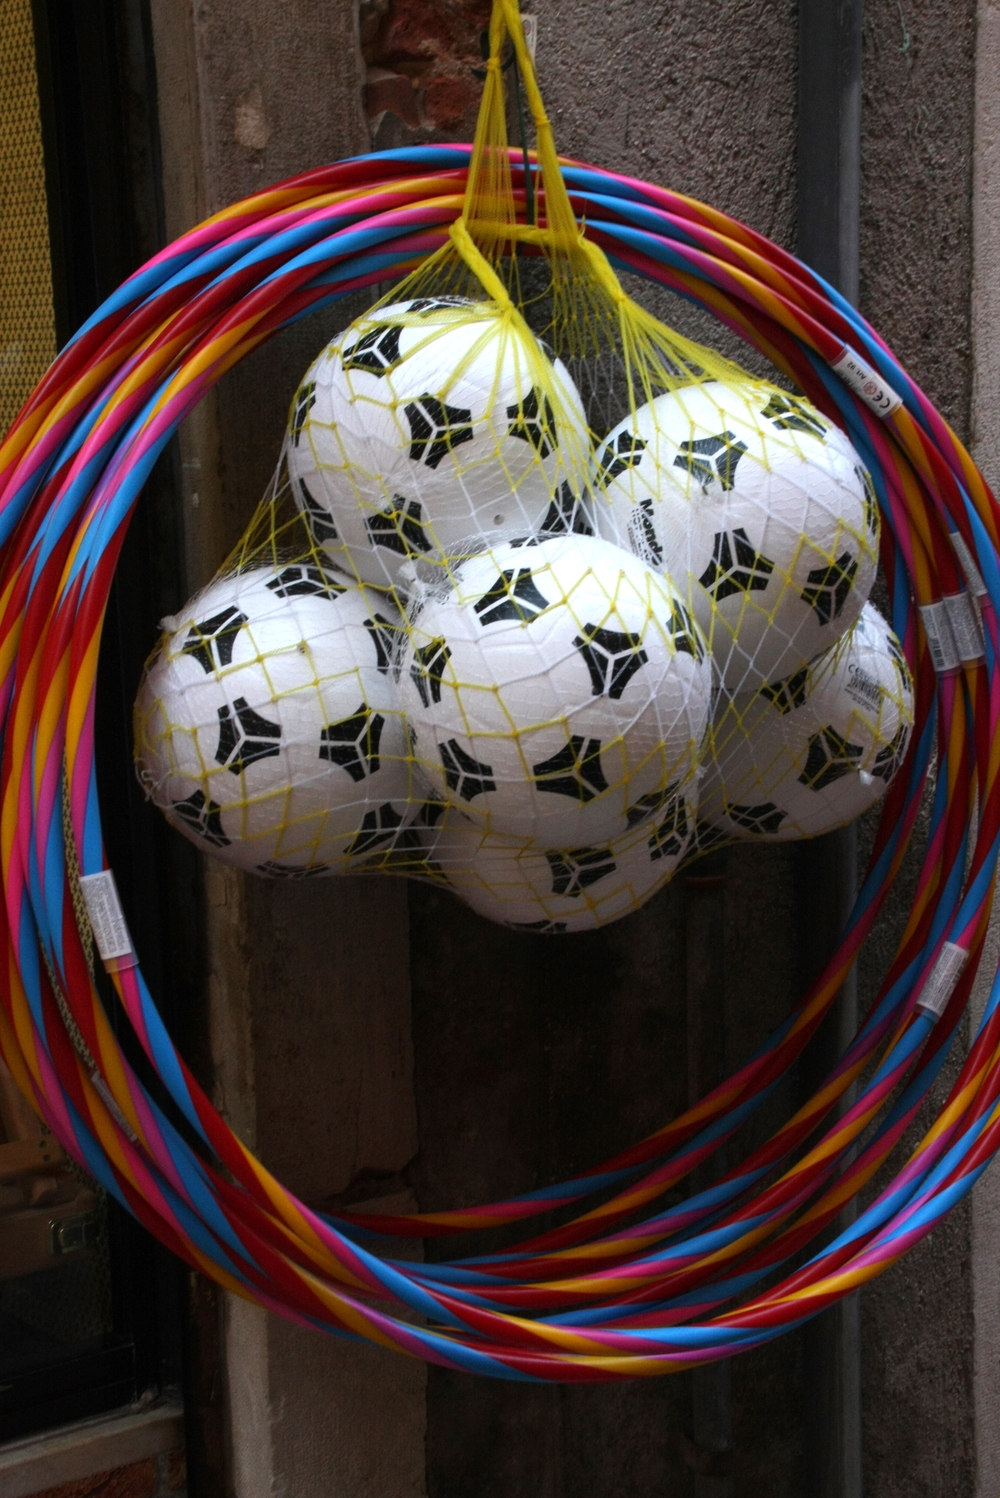 Soccer Balls and Hula Hoops